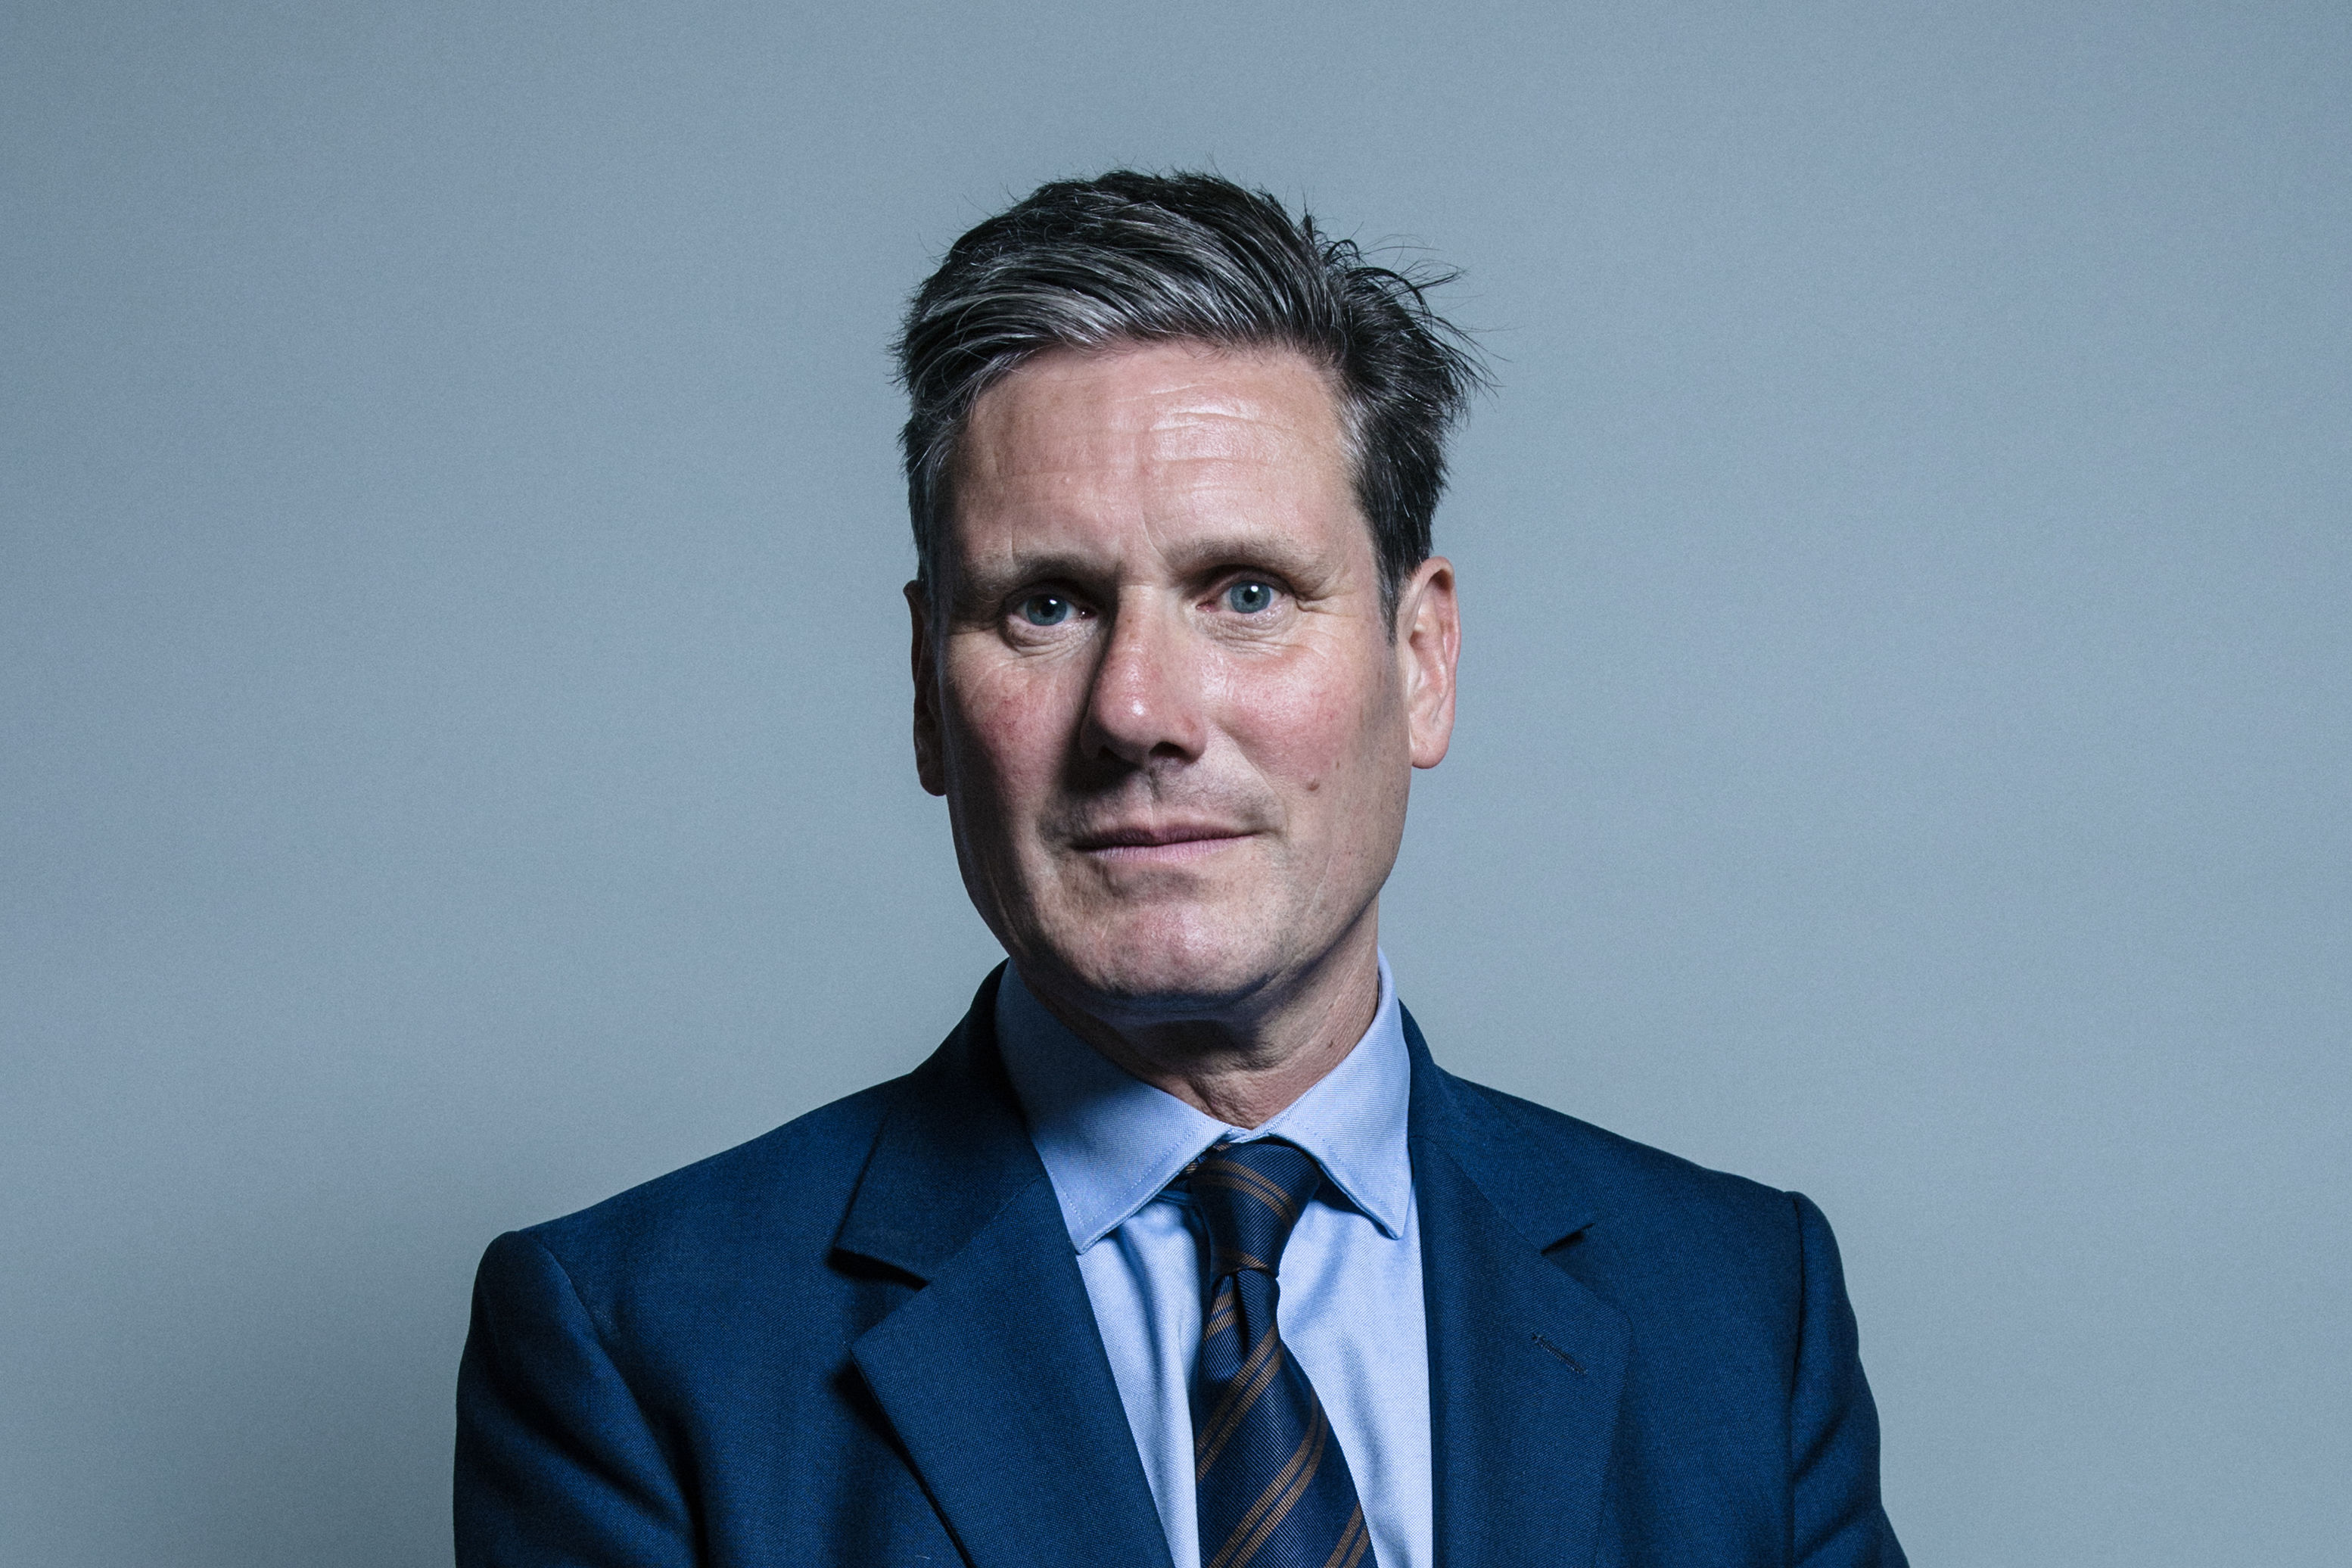 Official portrait of Keir Starmer